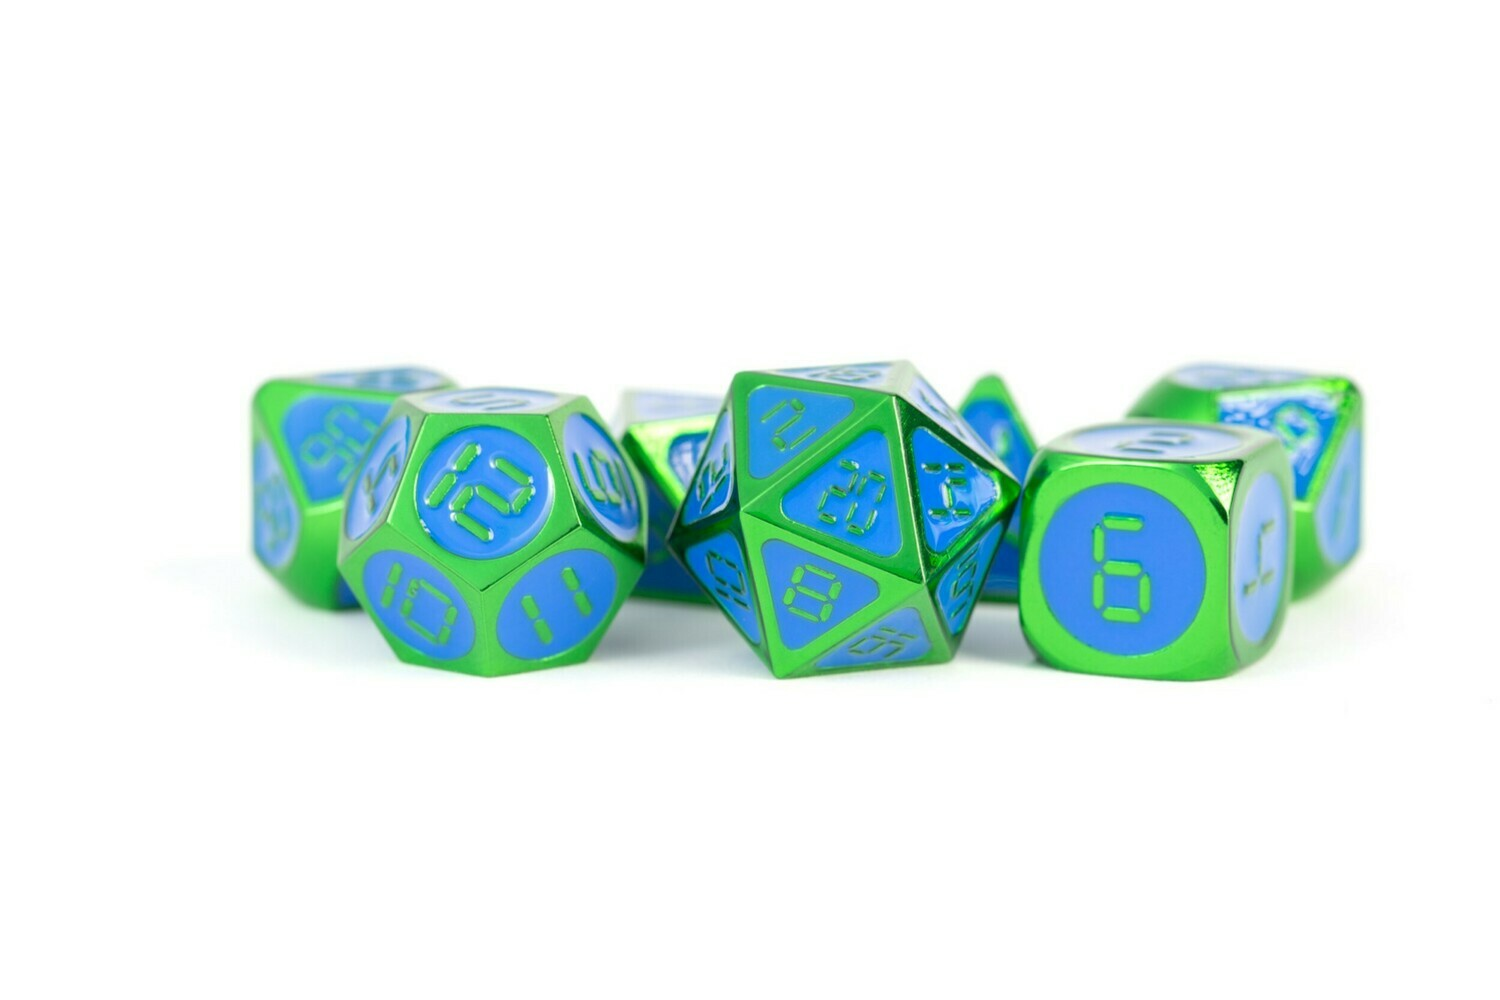 Metal Green with Blue Enamel 16mm Polyhedral Dice Set (Or Individually) RPG Tabletop Gaming